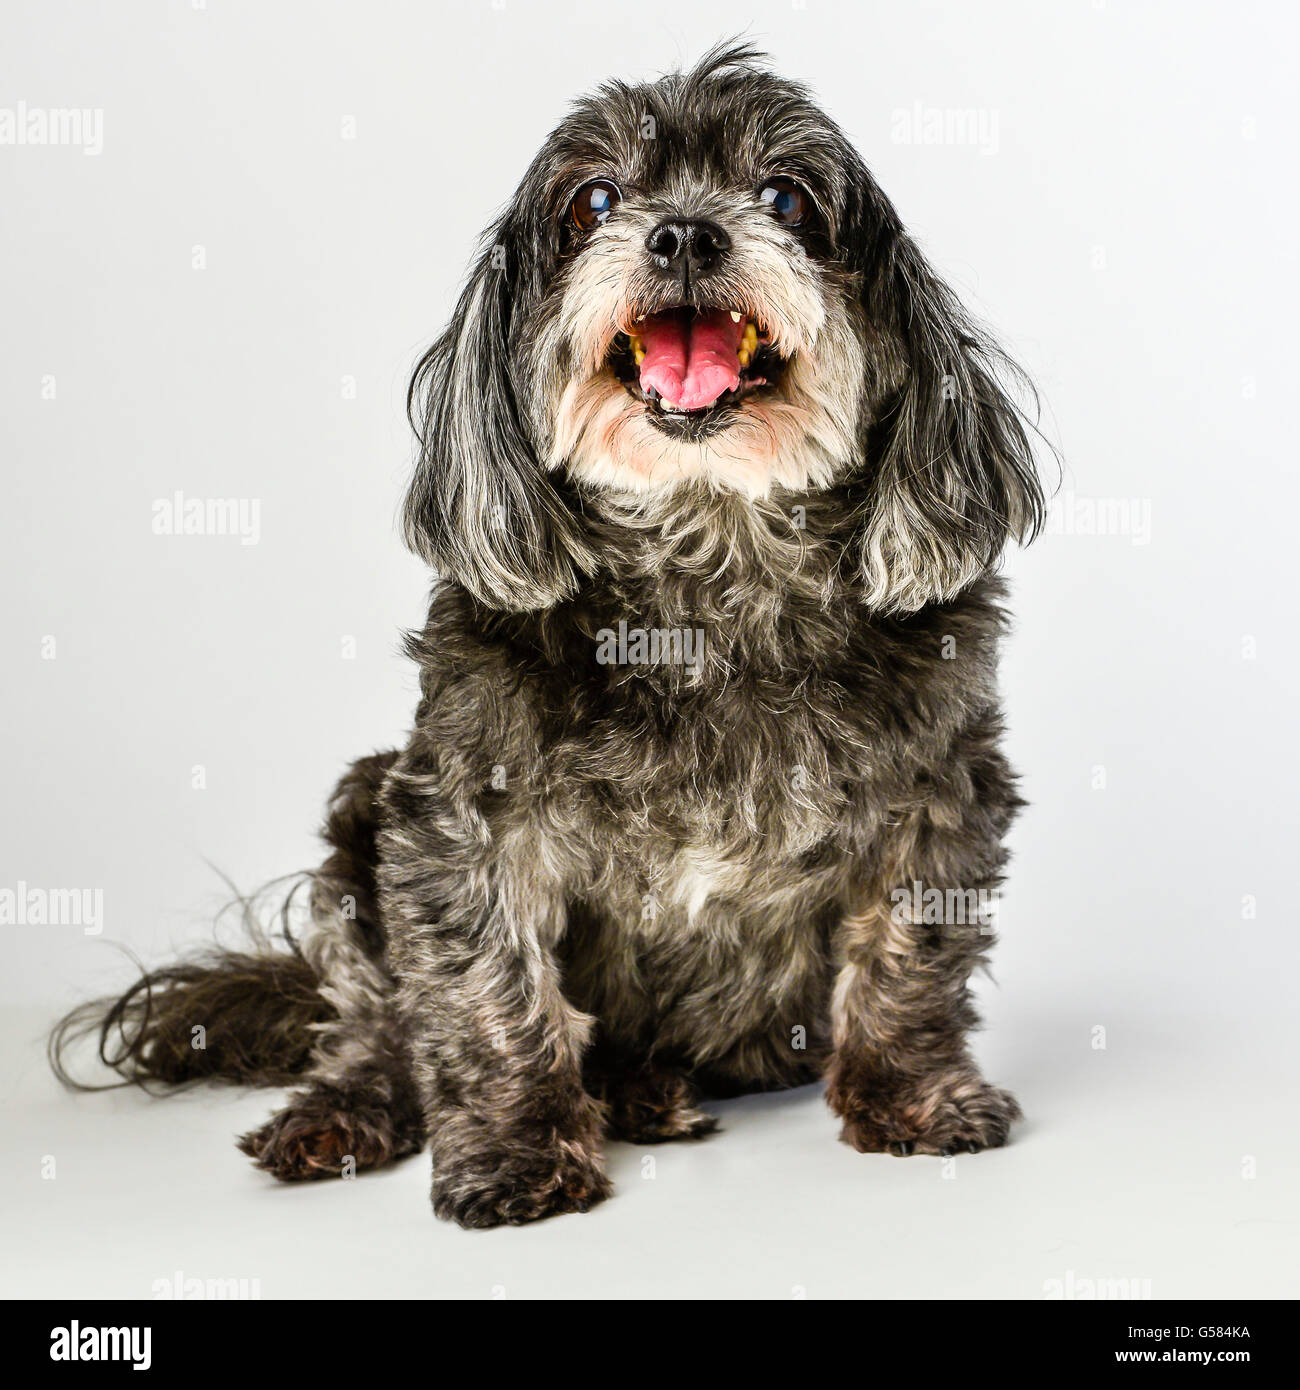 An adorable dark tri-colored mixed breed small dog with tongue out posing and smiling on white background - Stock Image